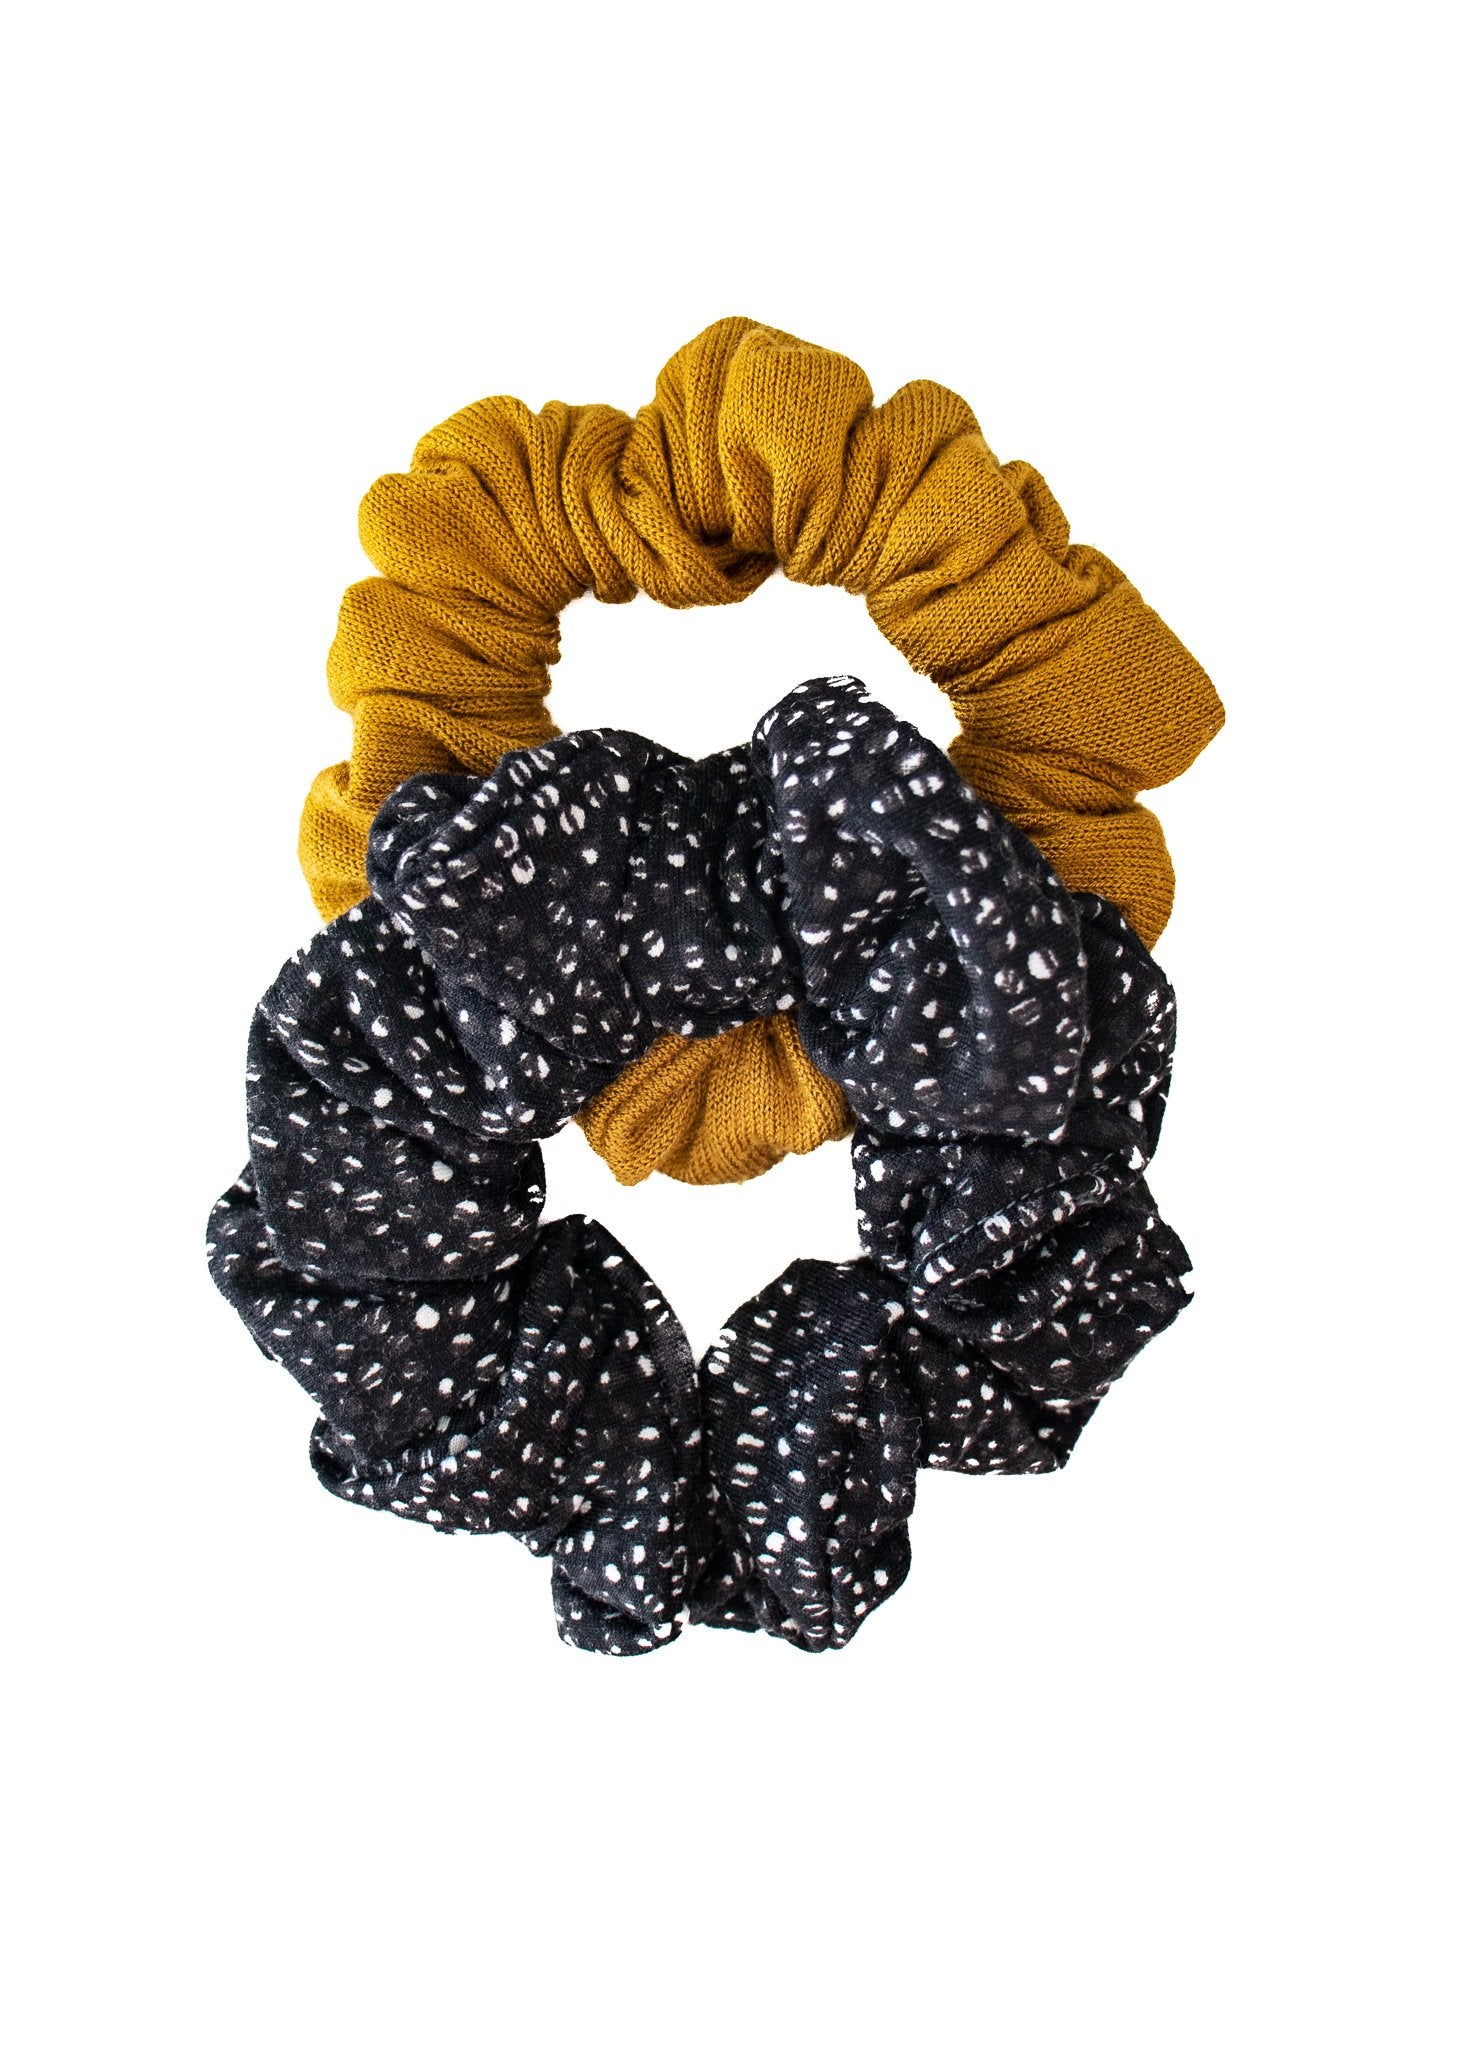 The Retro Scrunchie (2 pack)